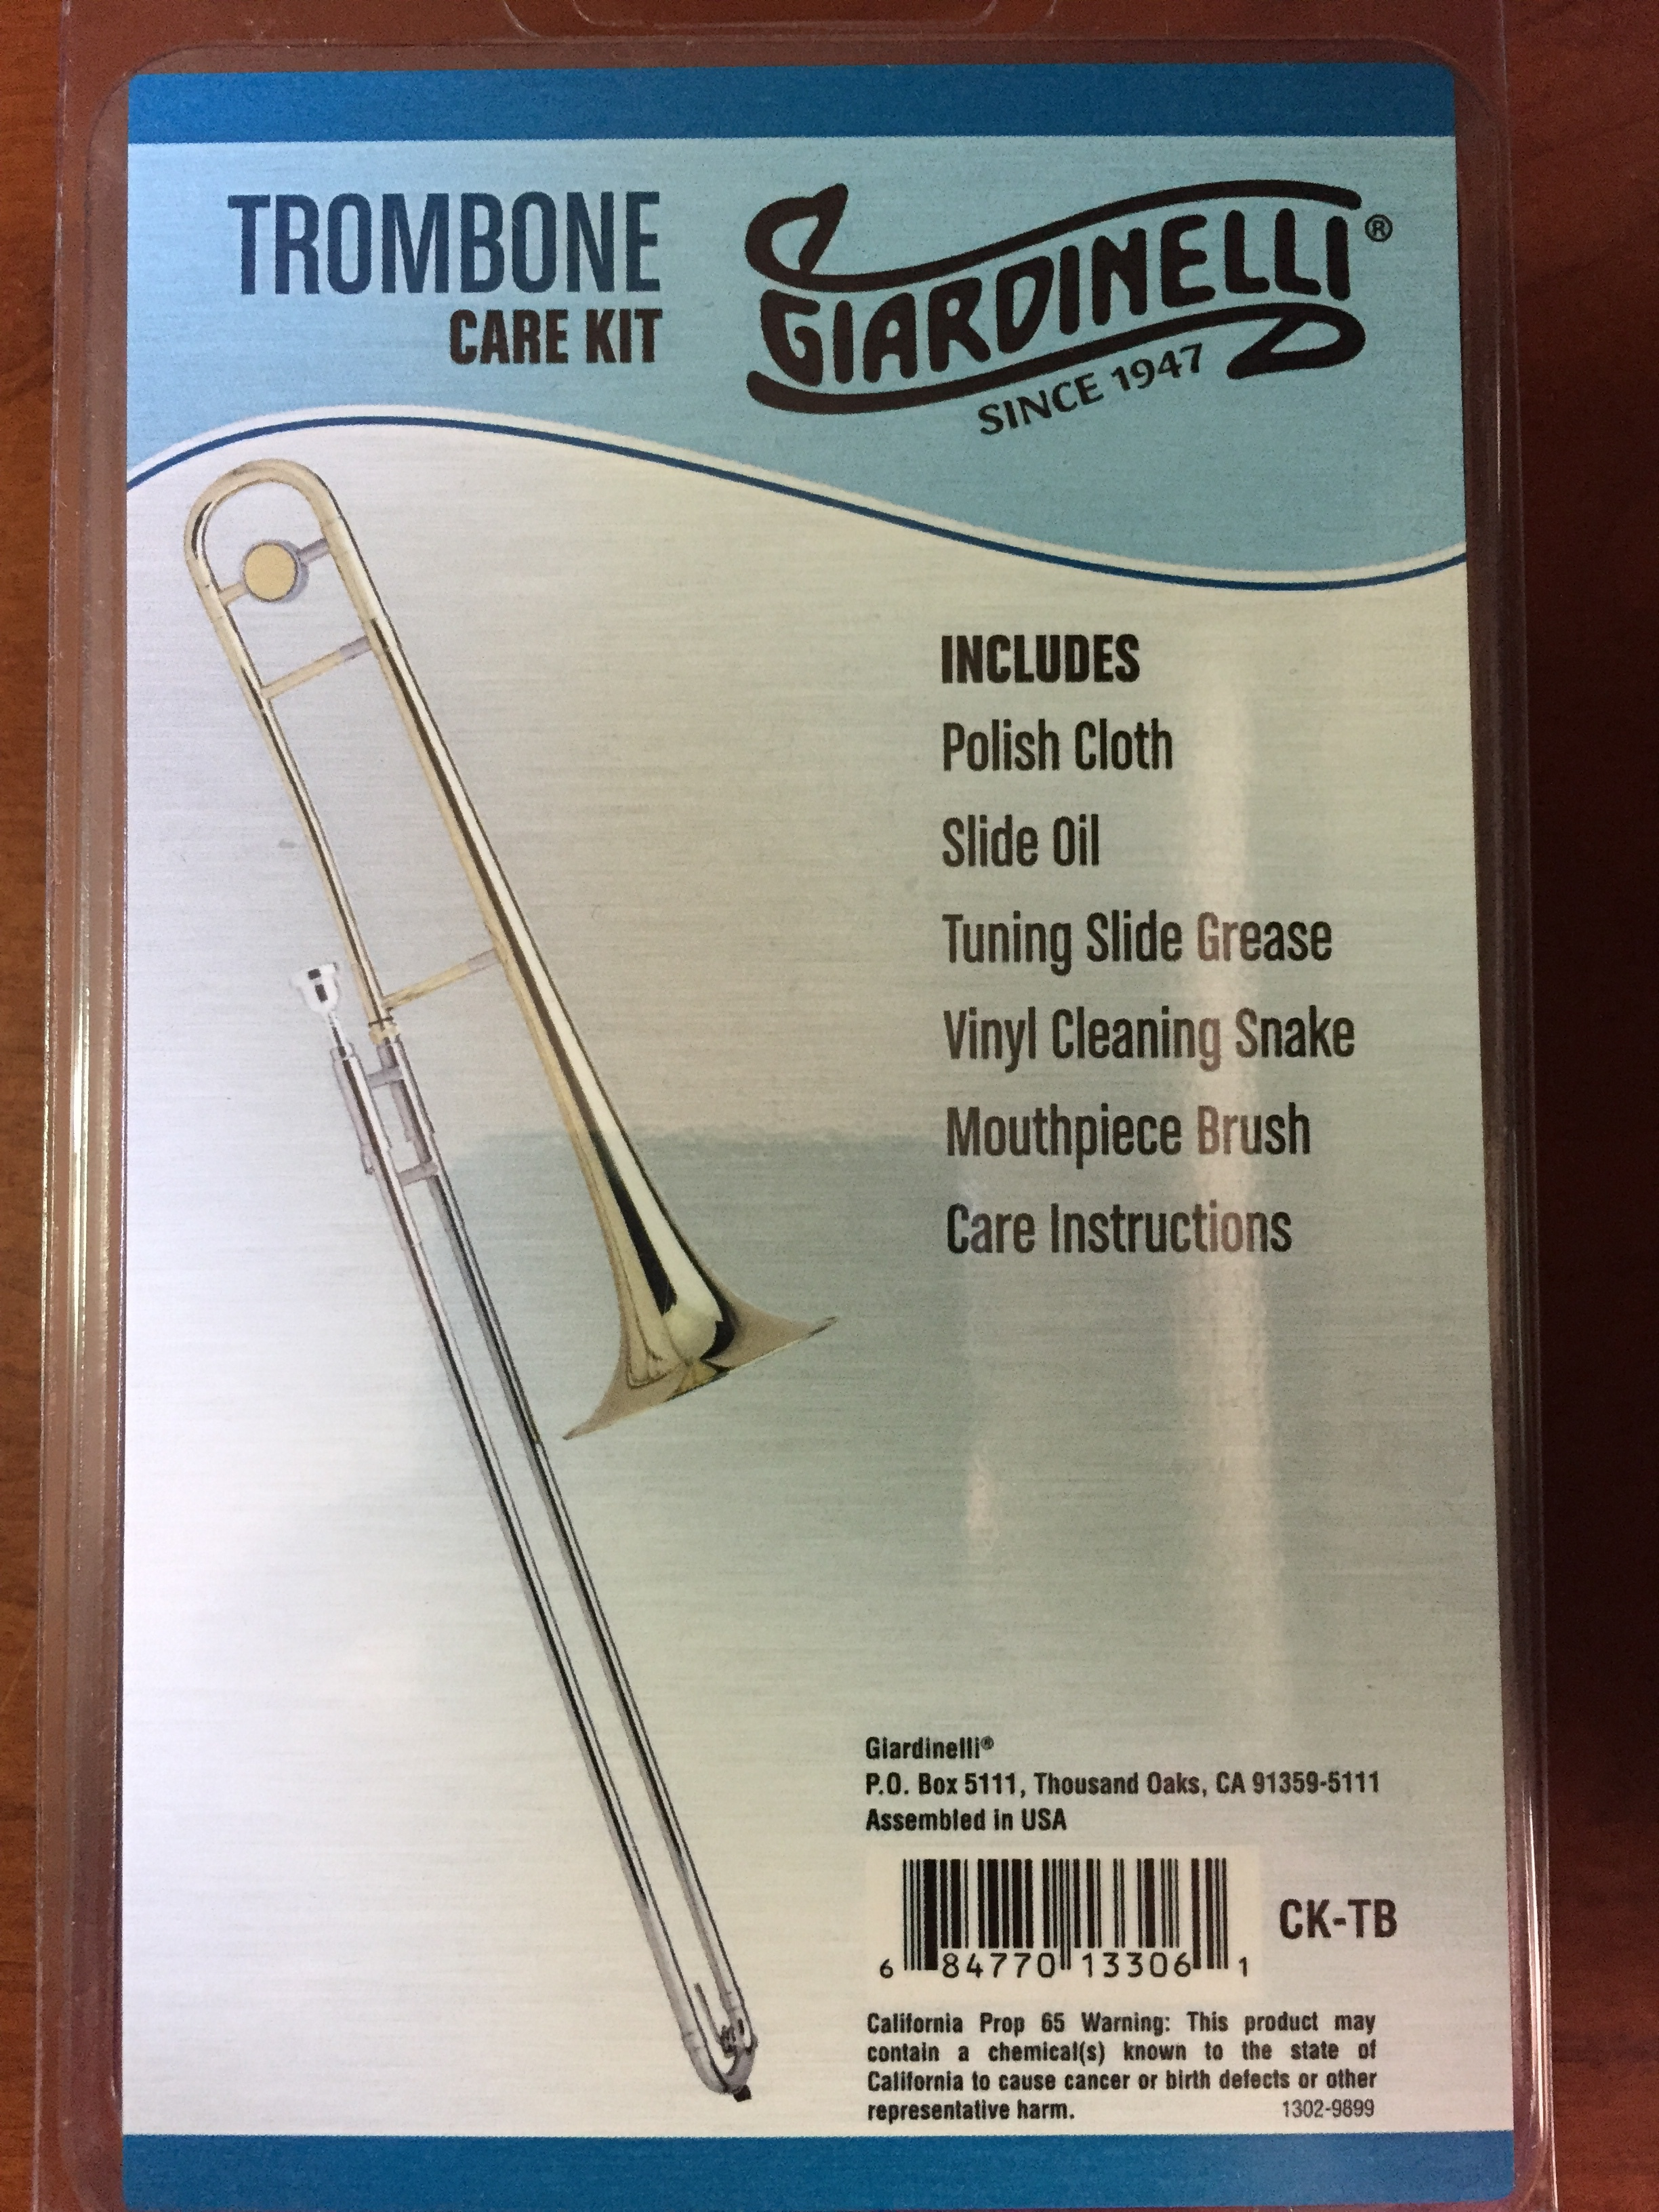 Giardinelli Trombone Care Kit